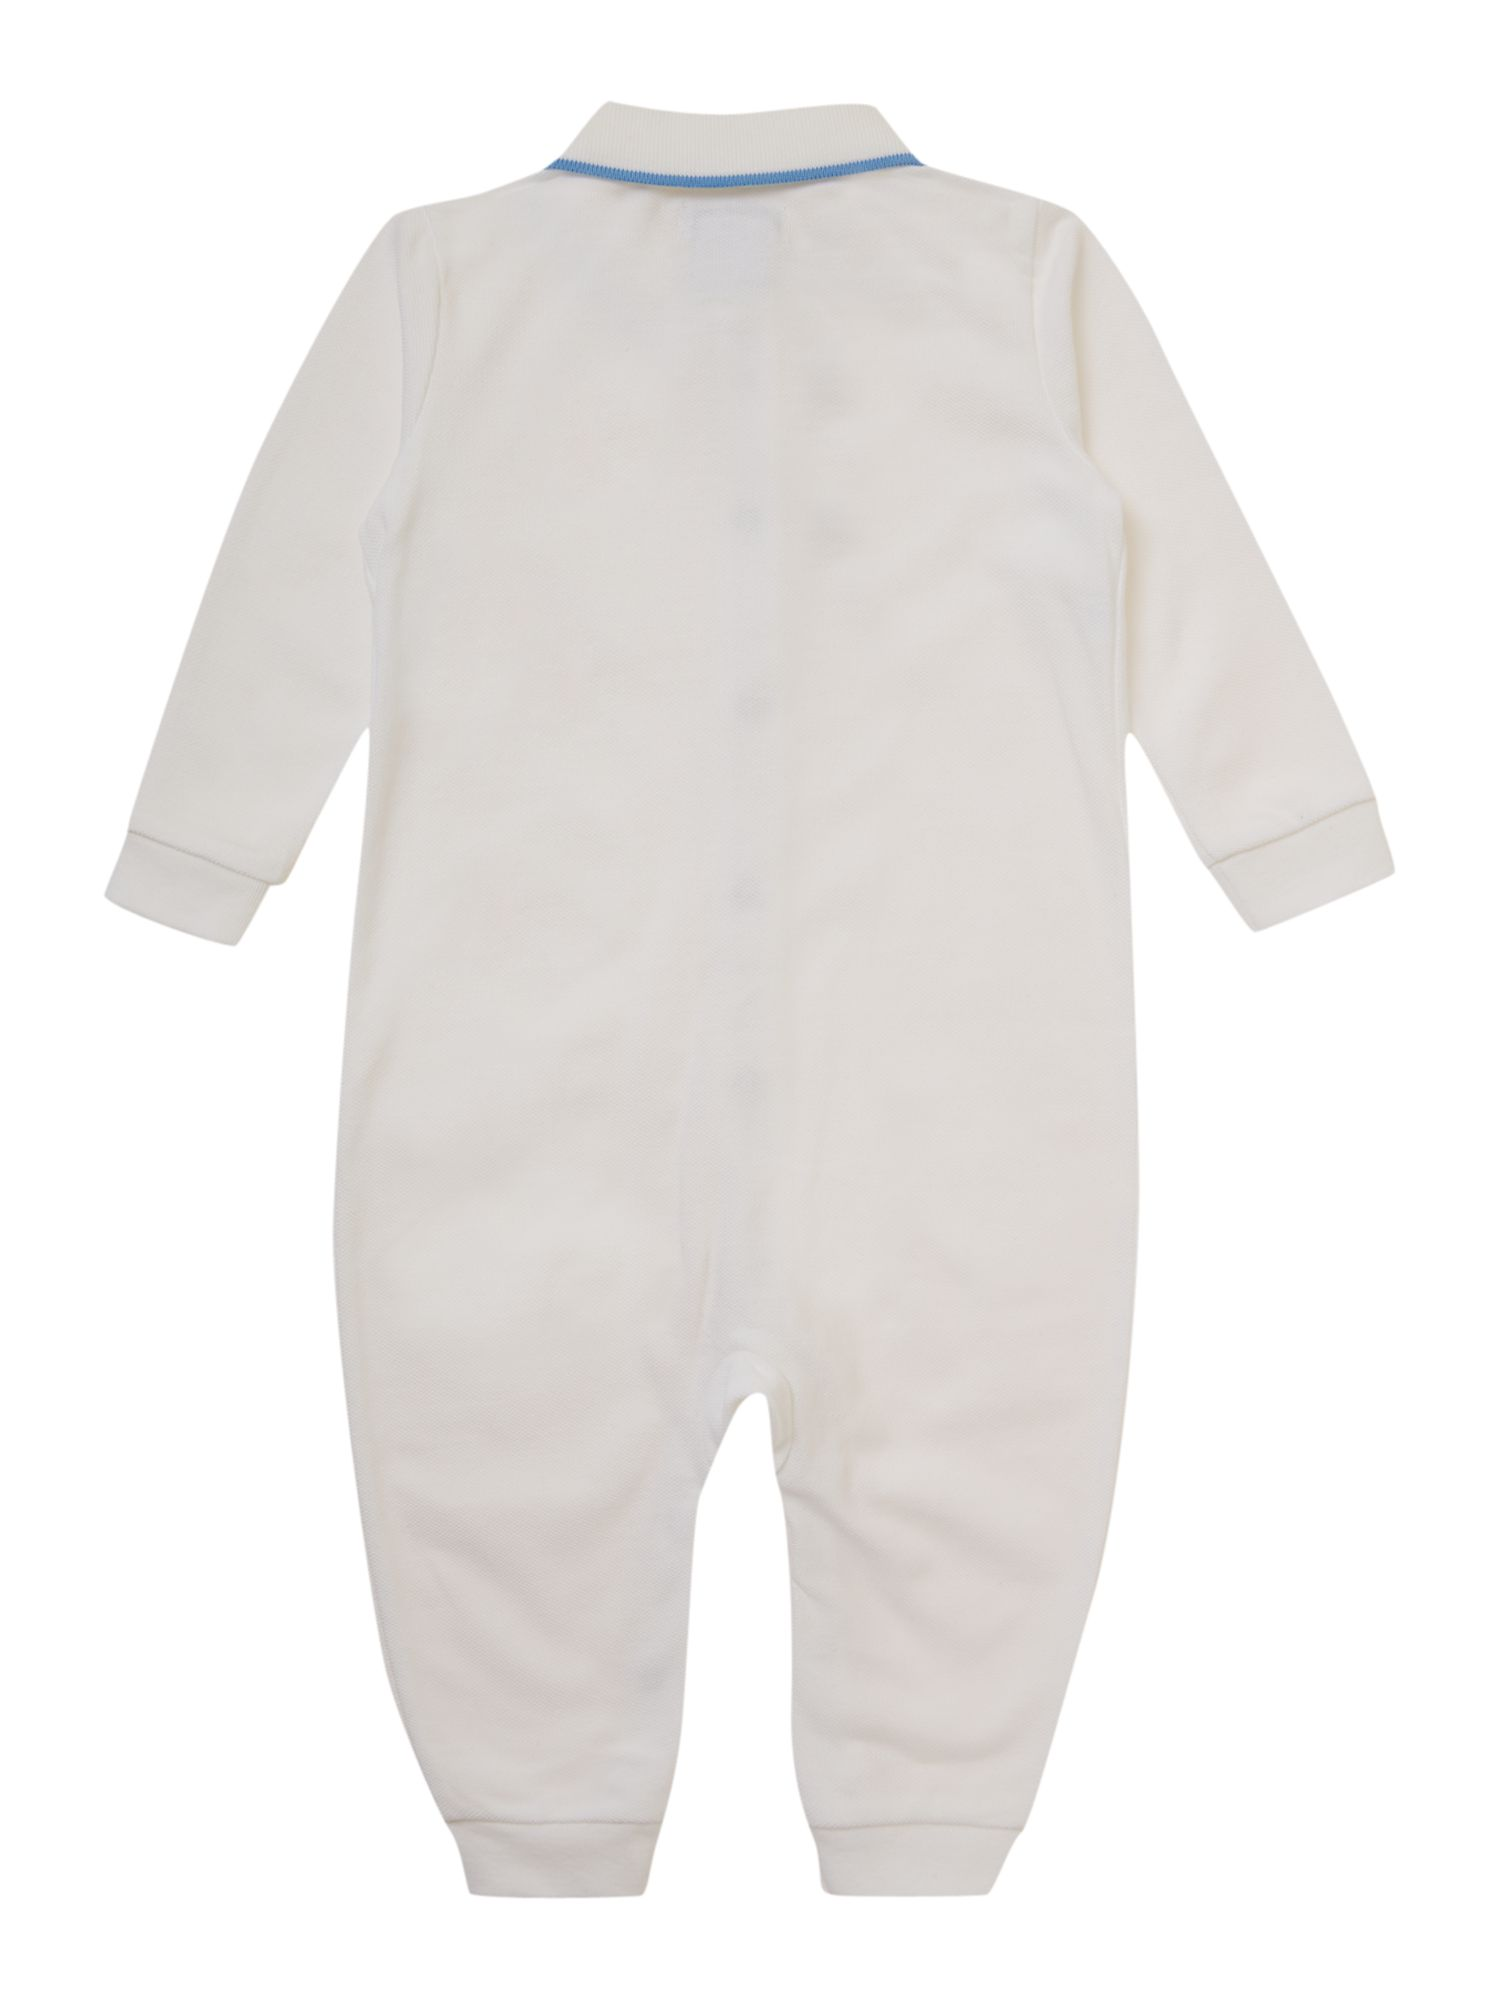 Baby boys polo all-in-one